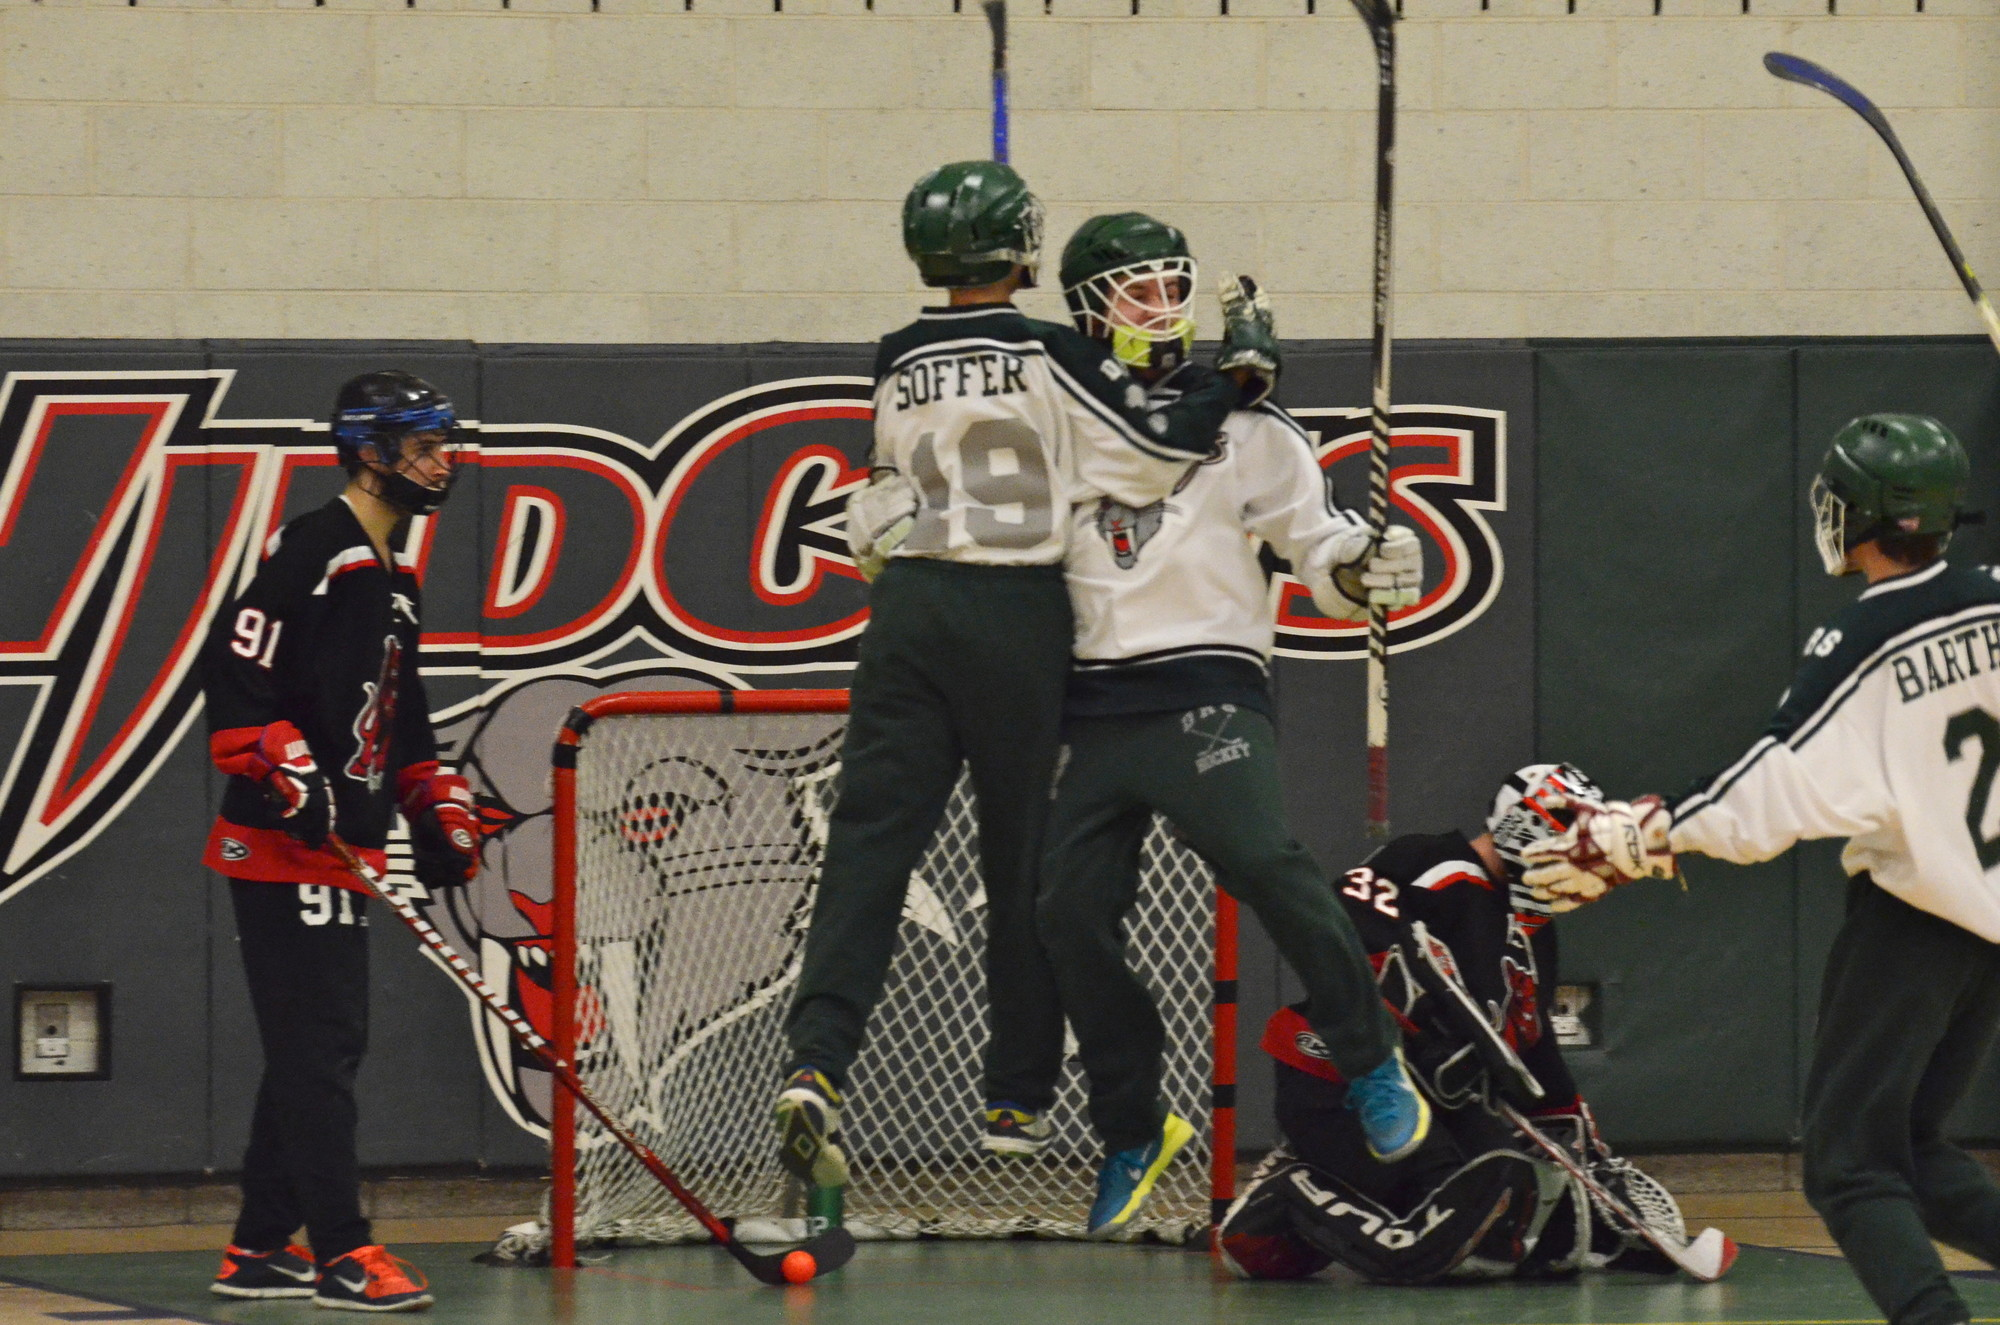 The DRS Wildcats floor hockey team advanced to the league finals. David Soffer (19) celebrated one of his team�s eight goals with Avi Genachowski.